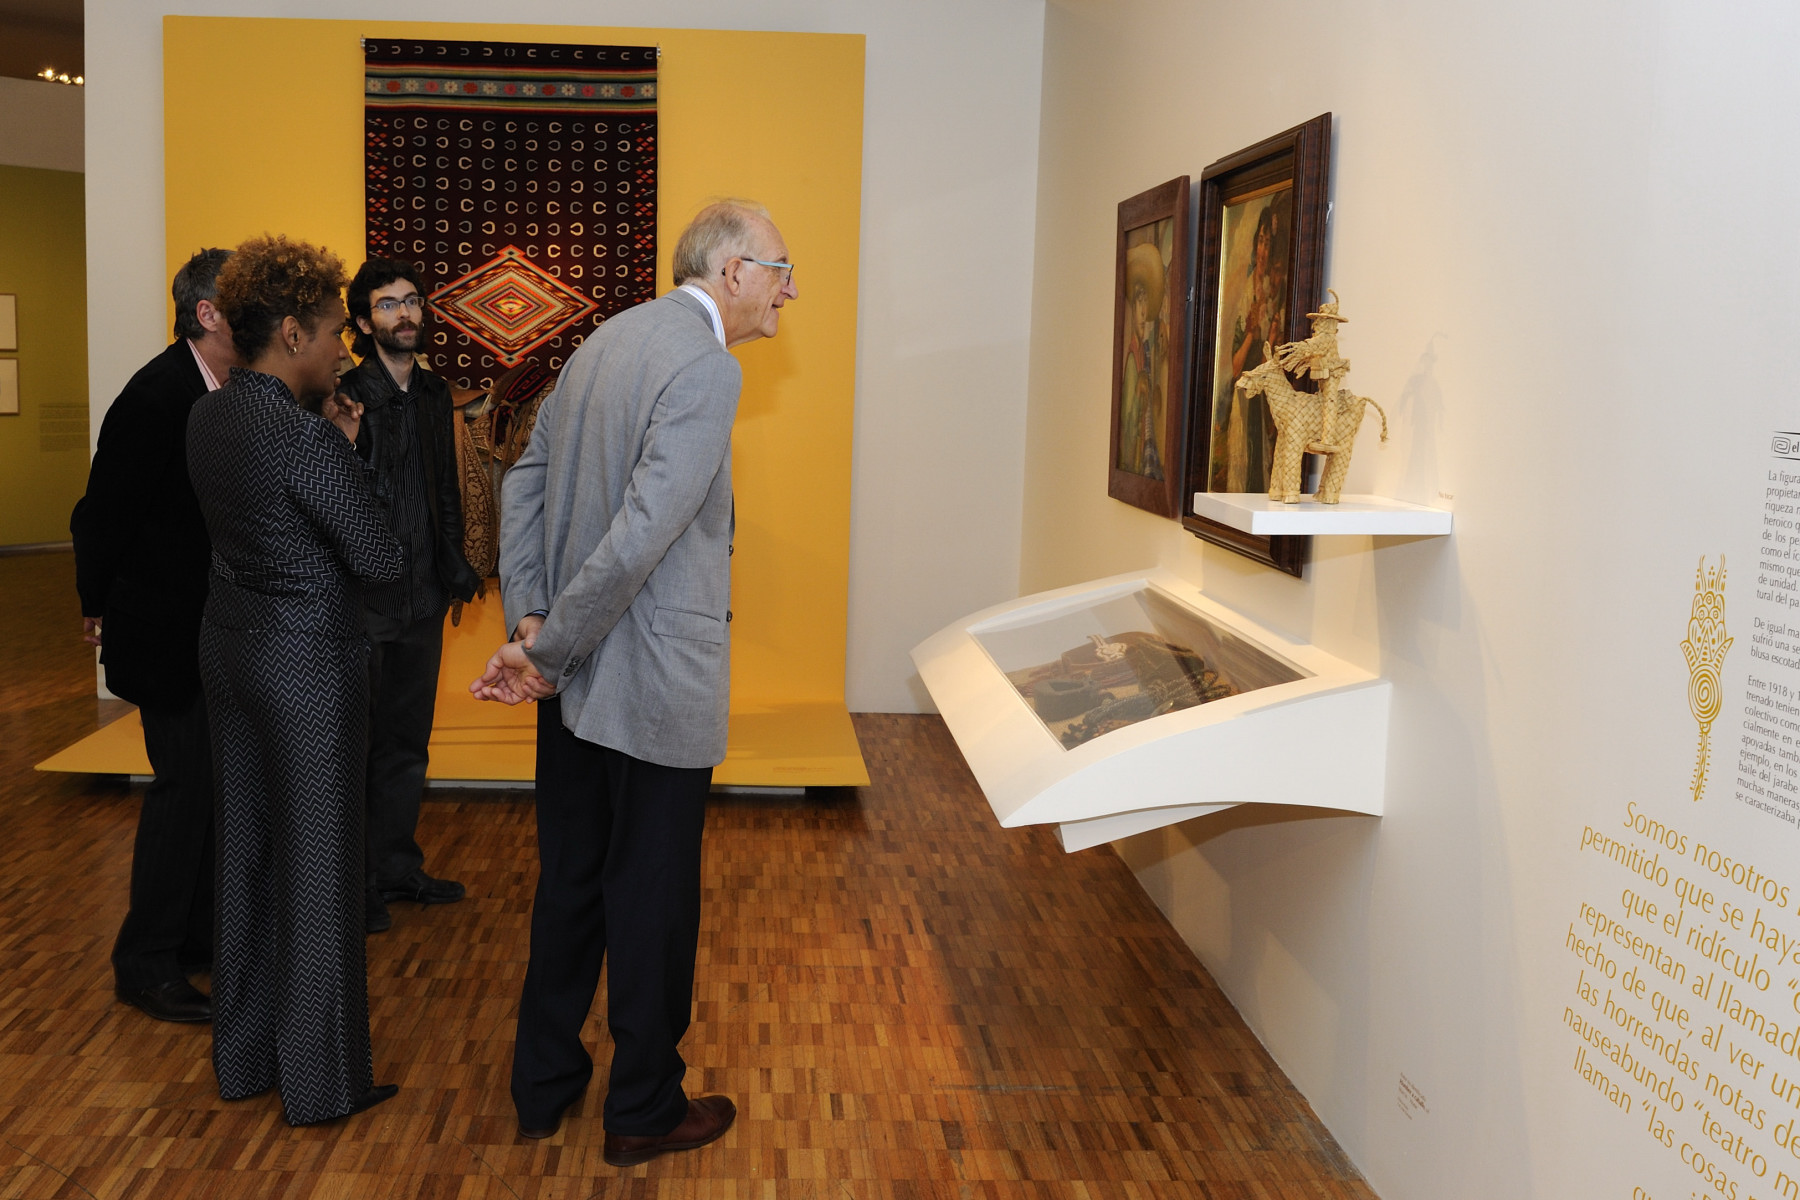 During the guided tour of the museum, His Excellency admired the artwork on display inside the museum.